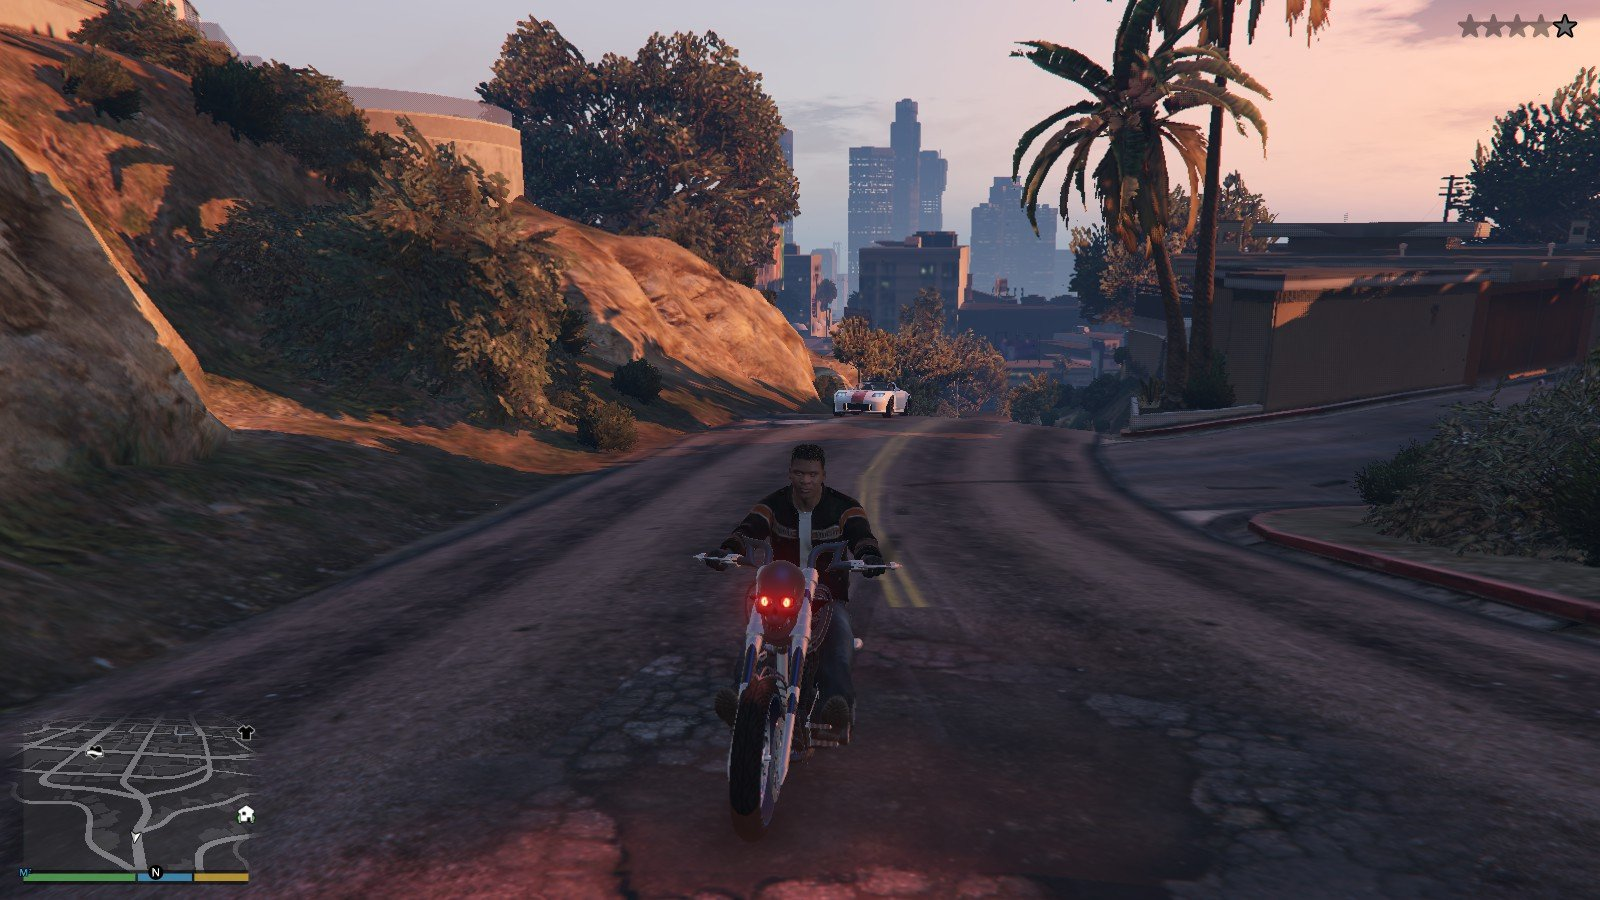 Harley Davidson Motocycle Leather Jacket GTA5 Mods (7)